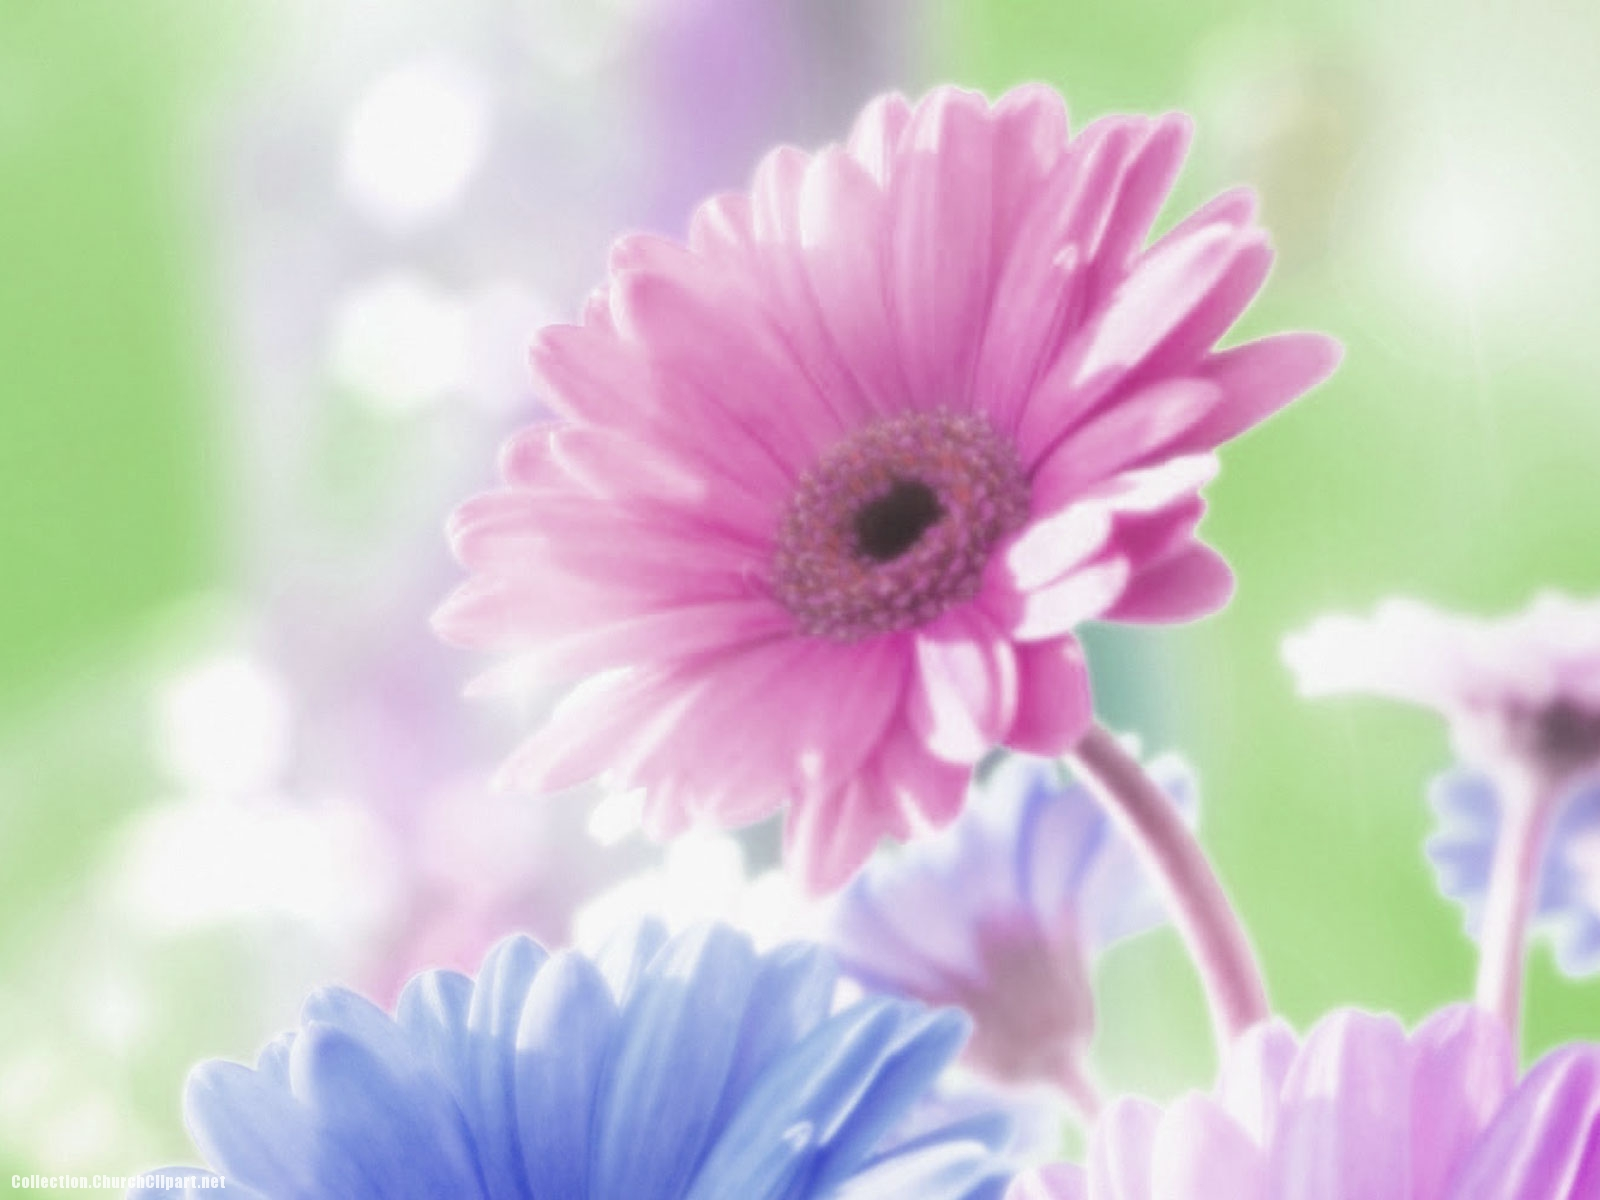 Soft Flower Background for Powerpoint